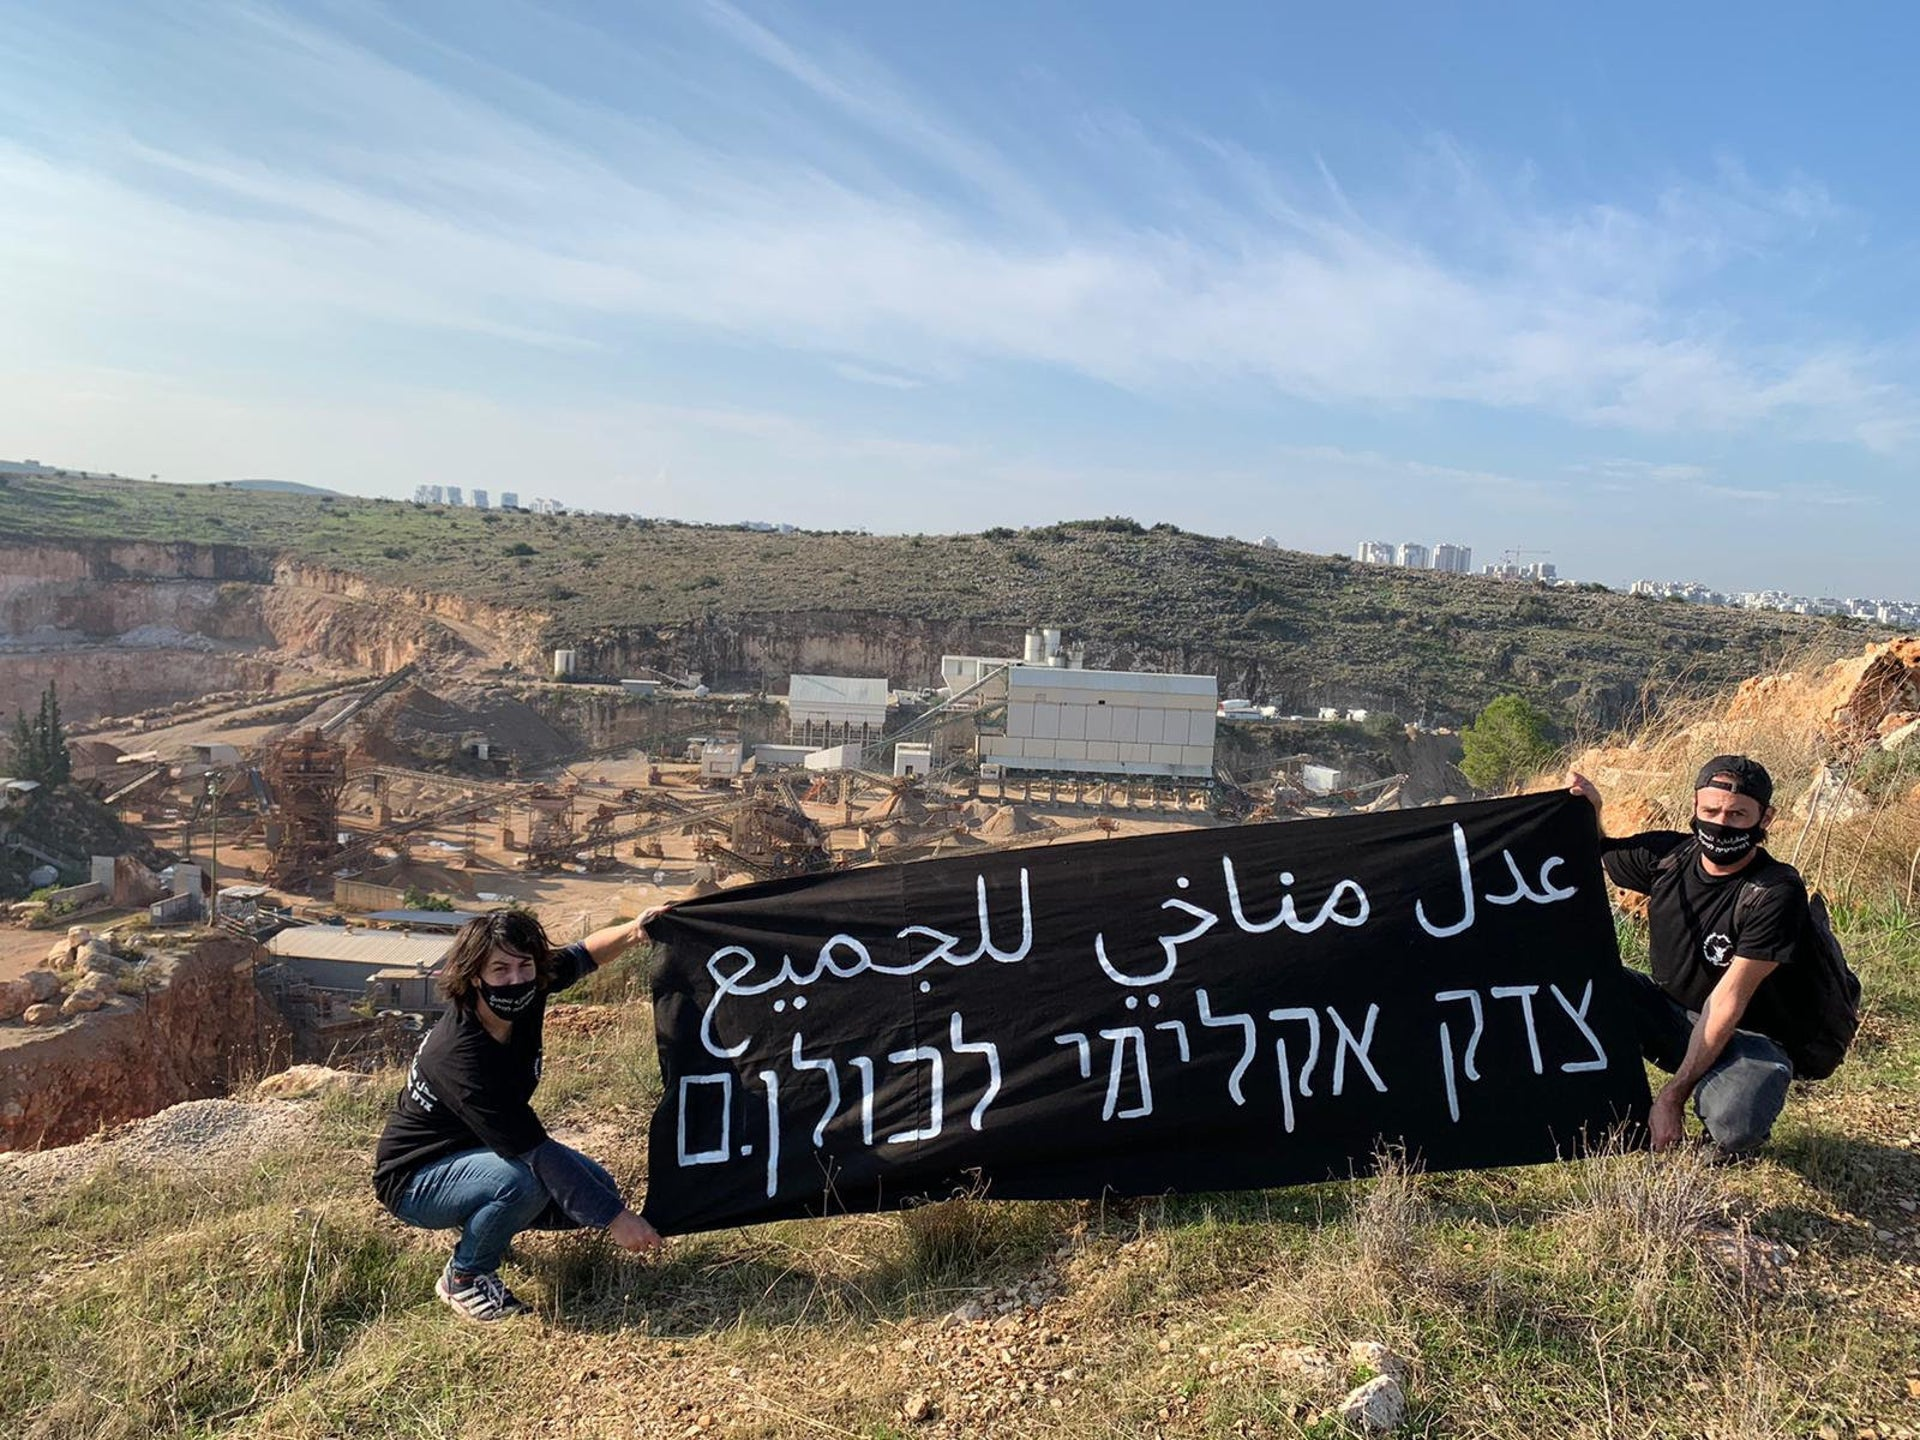 Activists from the Jewish-Arab One Climate movement demonstrating against Israel's development of natural areas in the West Bank, November 28, 2021